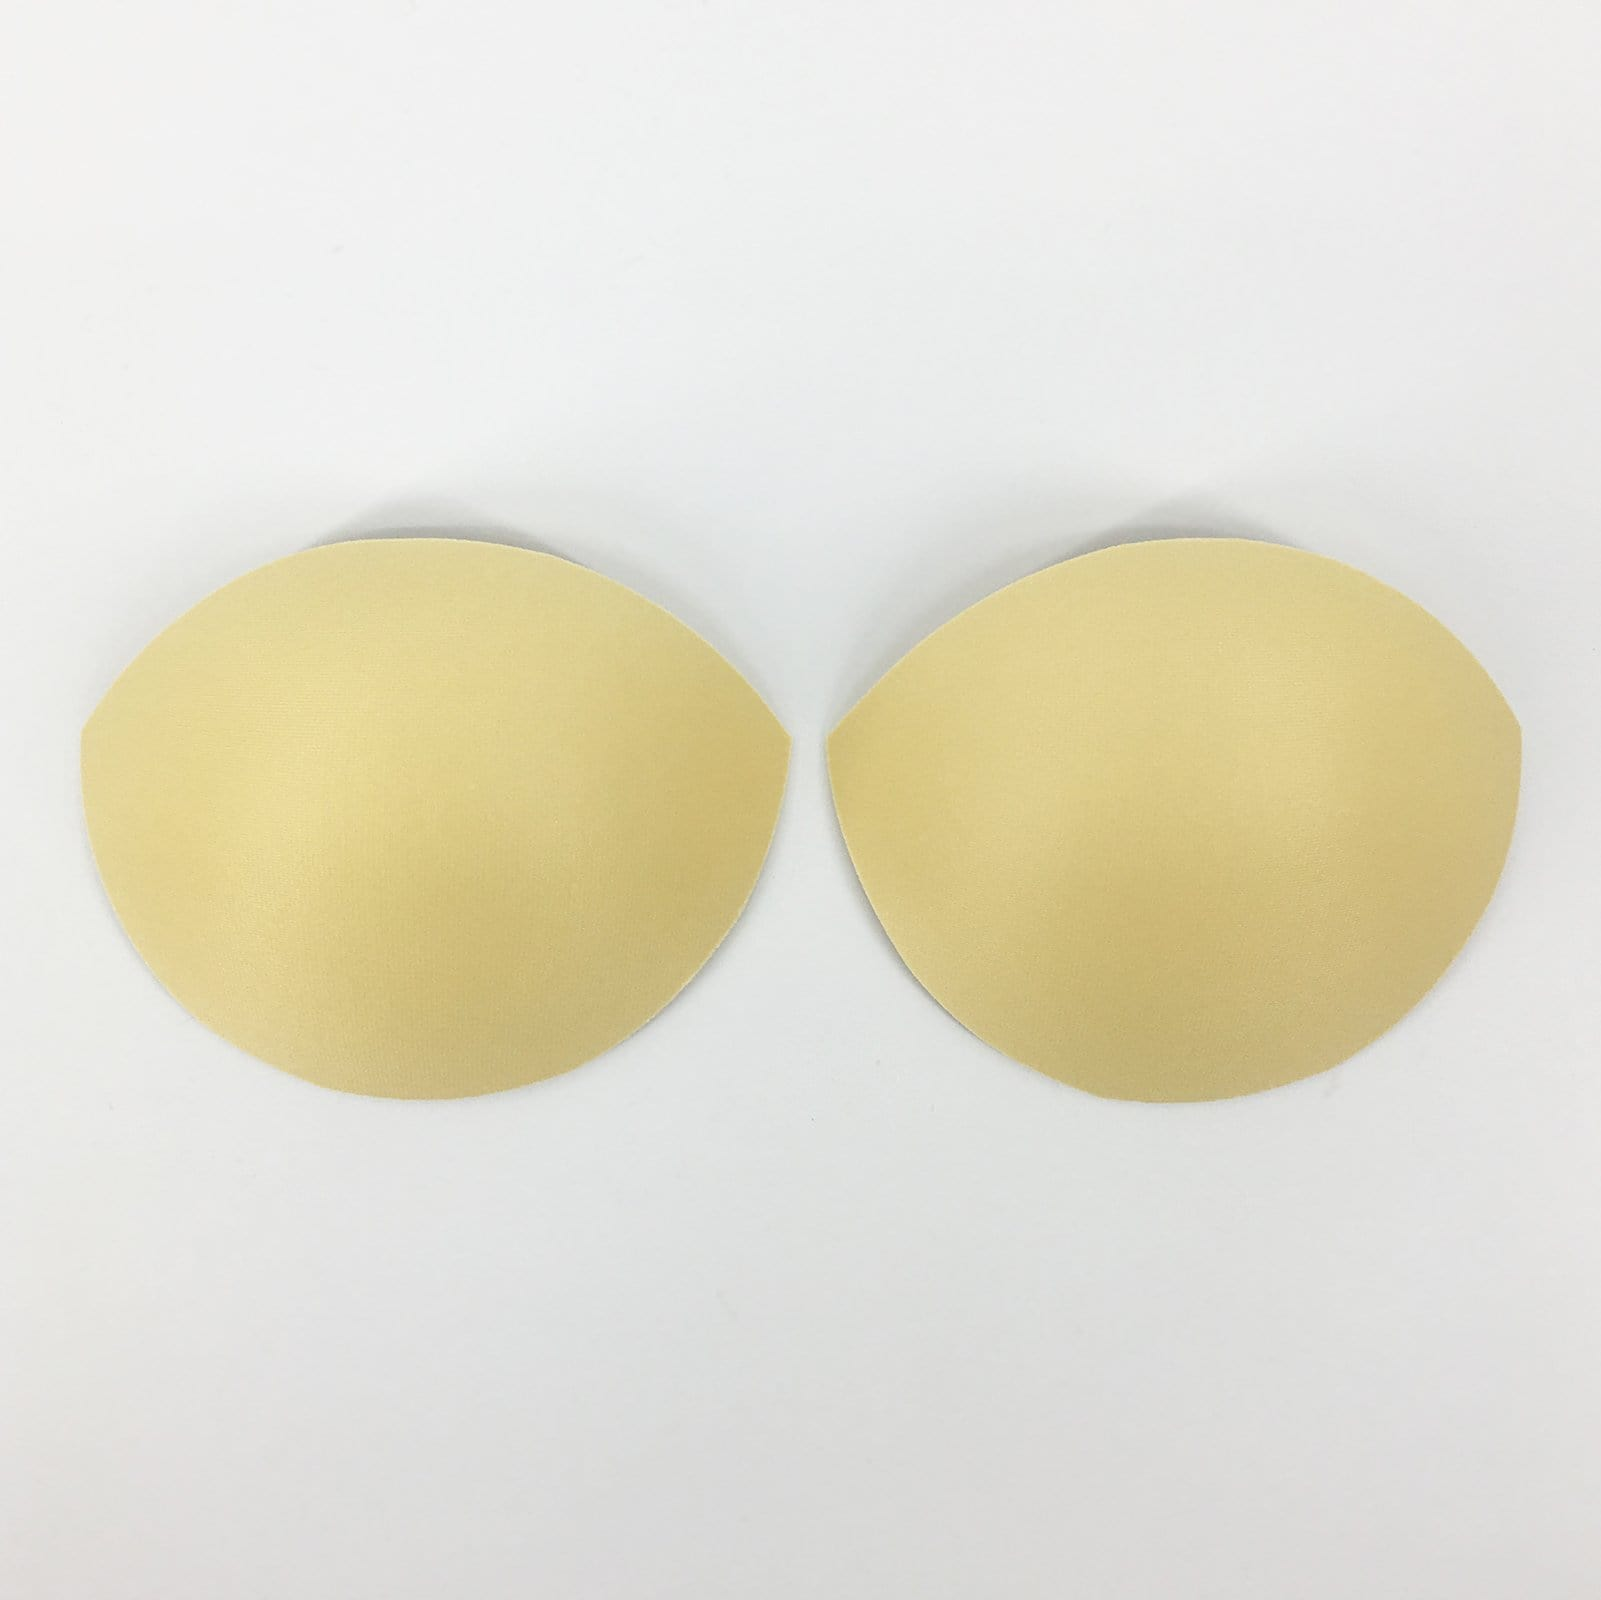 Half-Cup Push-Up Bra Paddings Inserts In Beige - FUNFIT